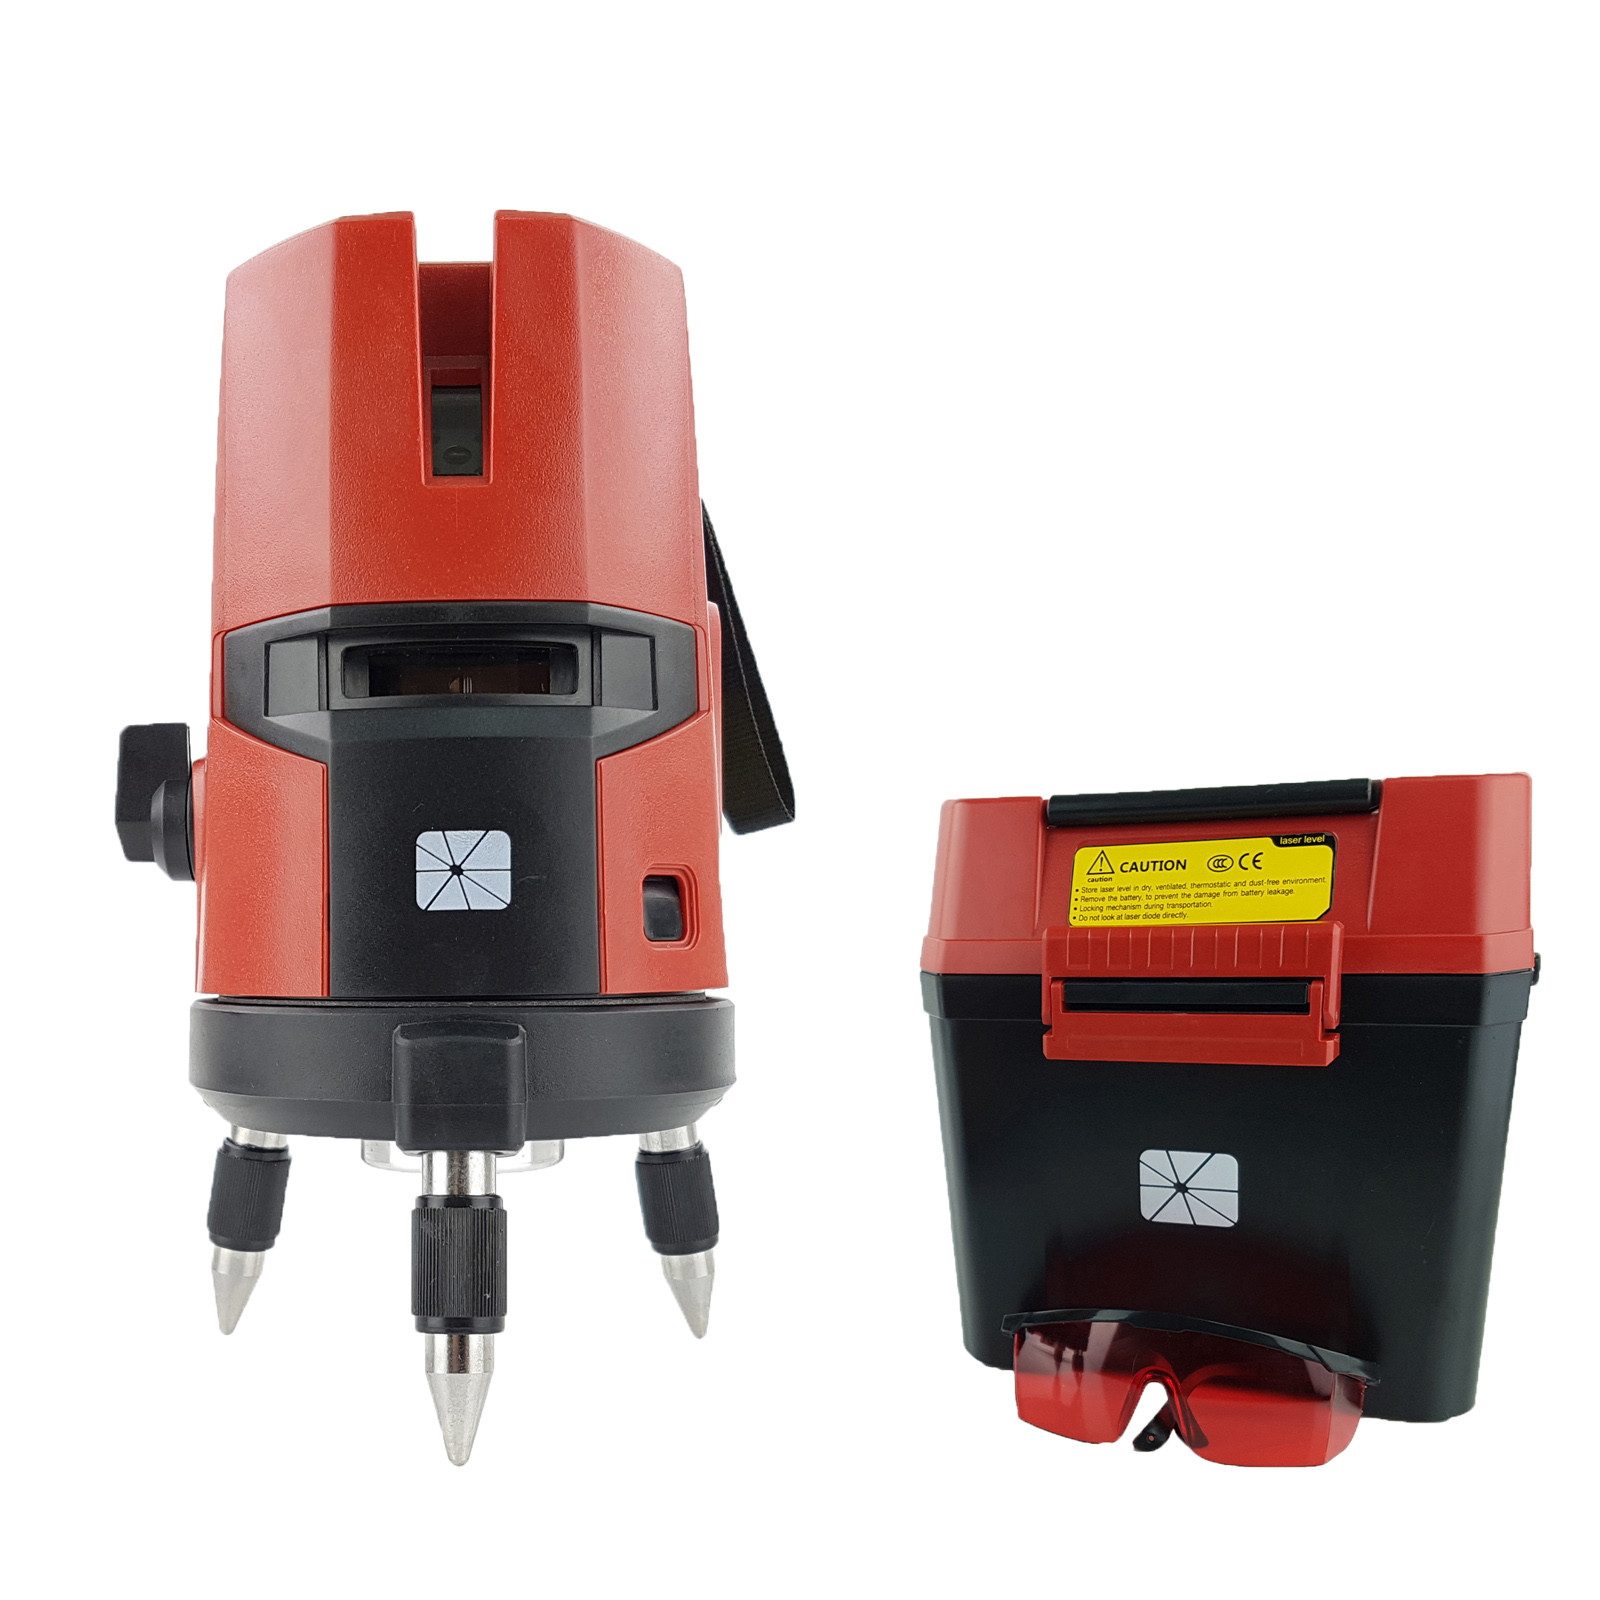 LOGIK-FX Self Levelling Laser Level Red